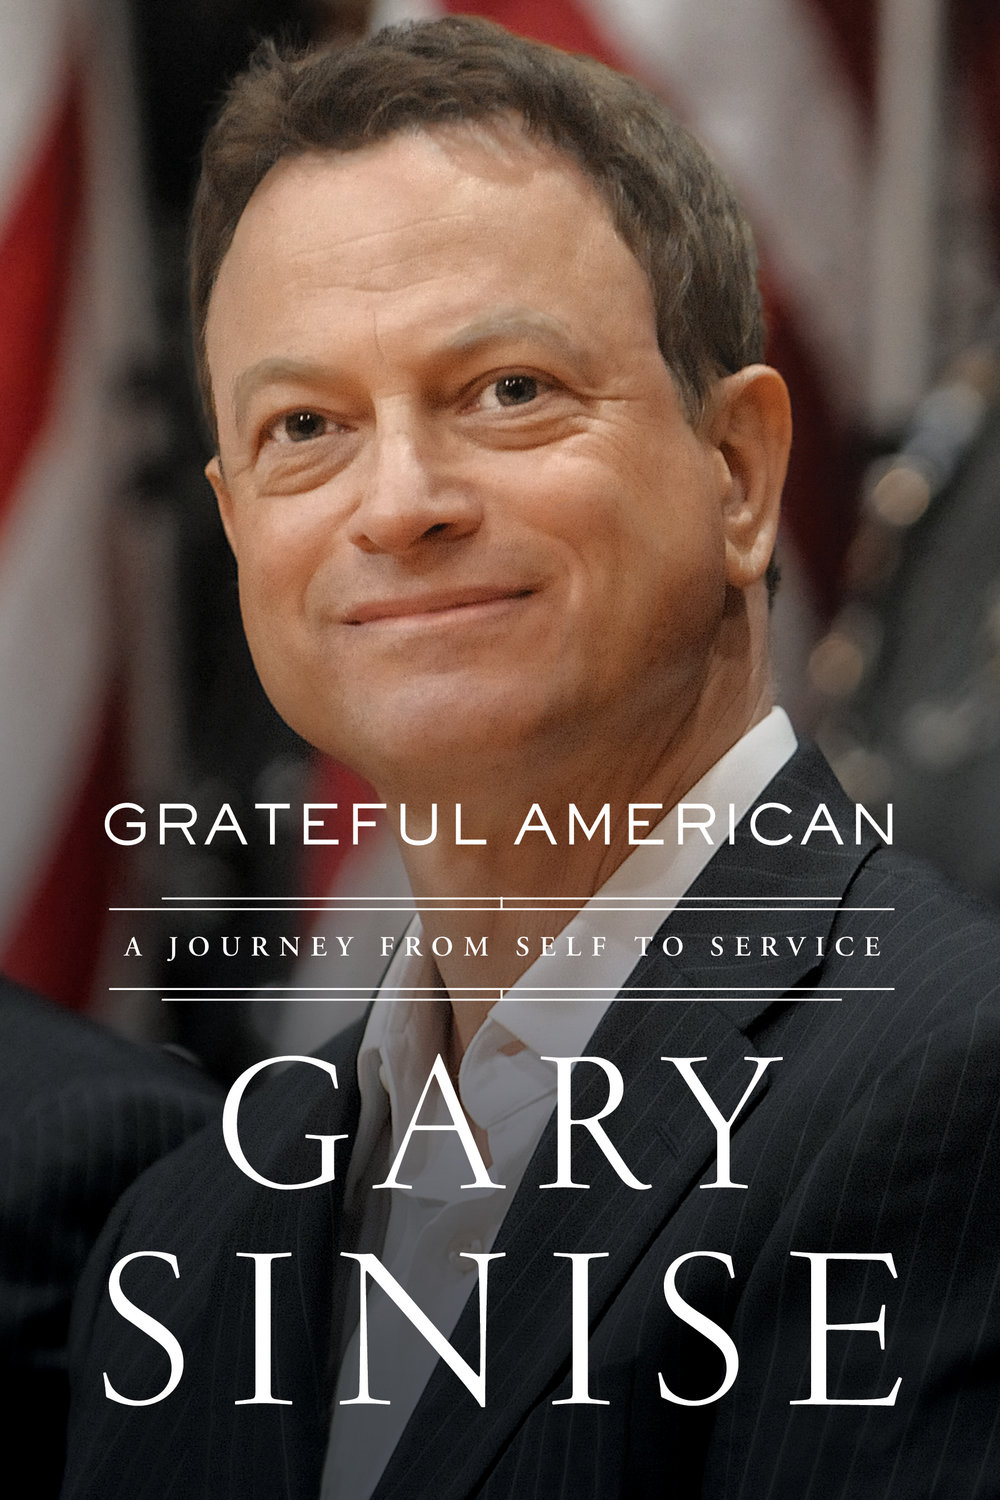 Grateful American cover FINAL APPROVED.jpg